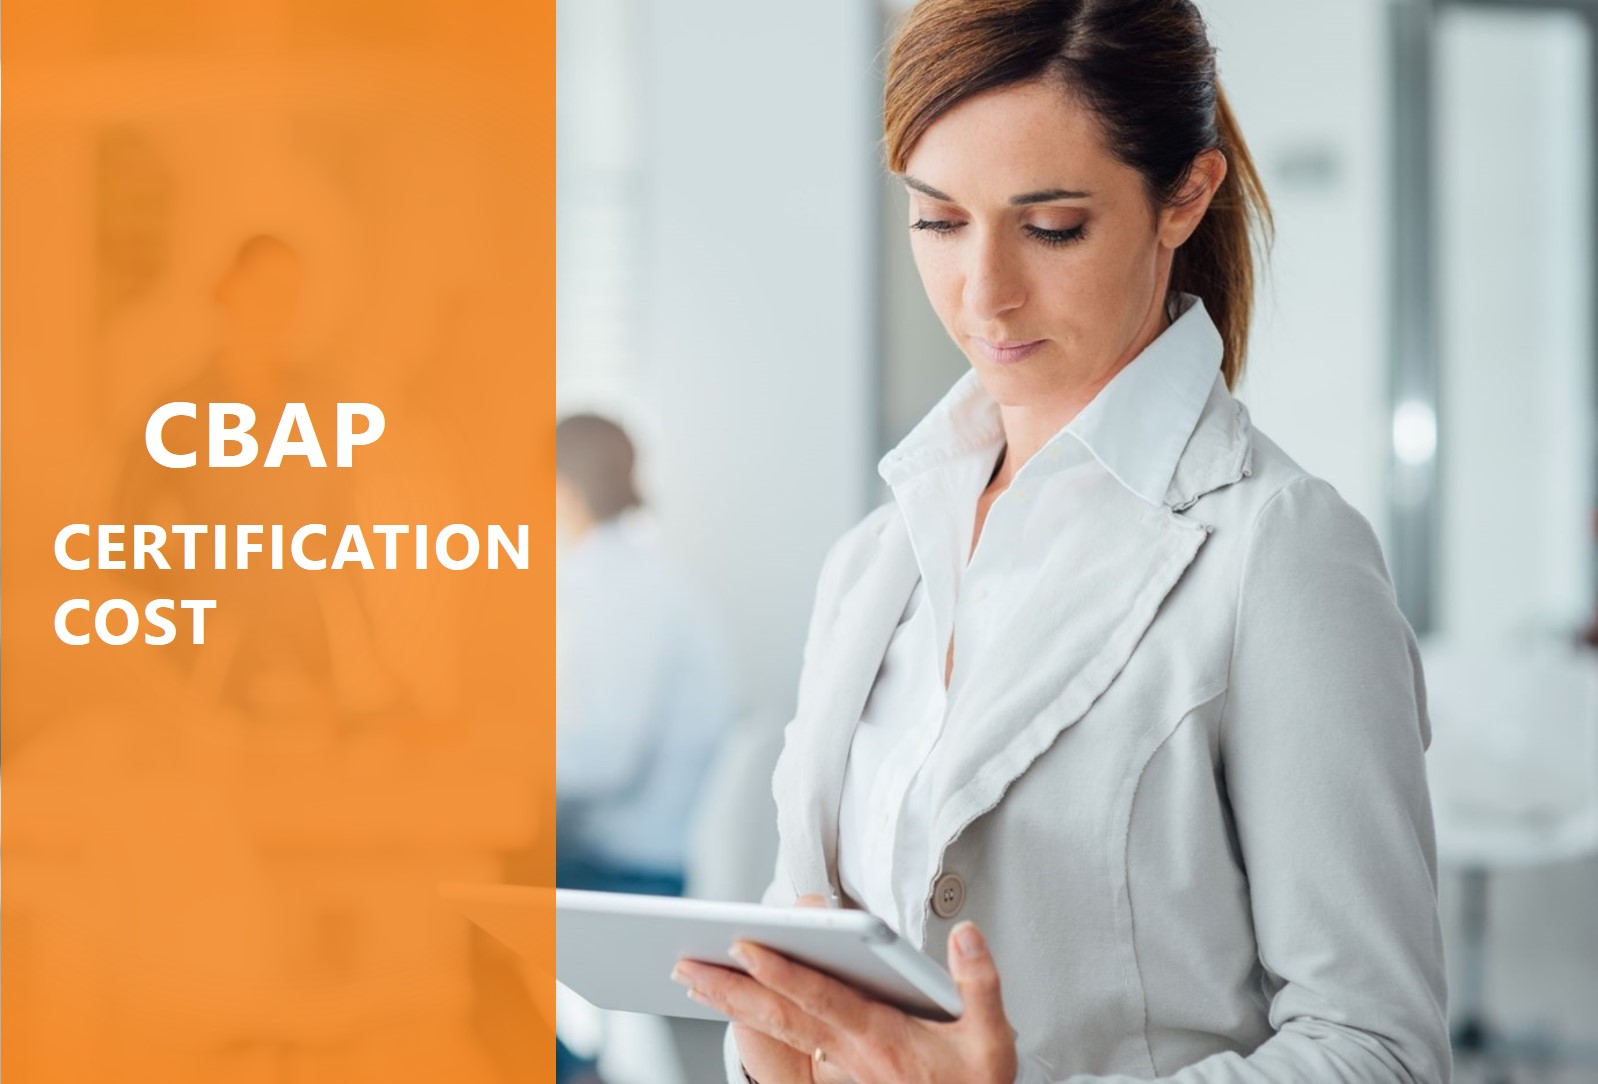 CBAP Certification Cost